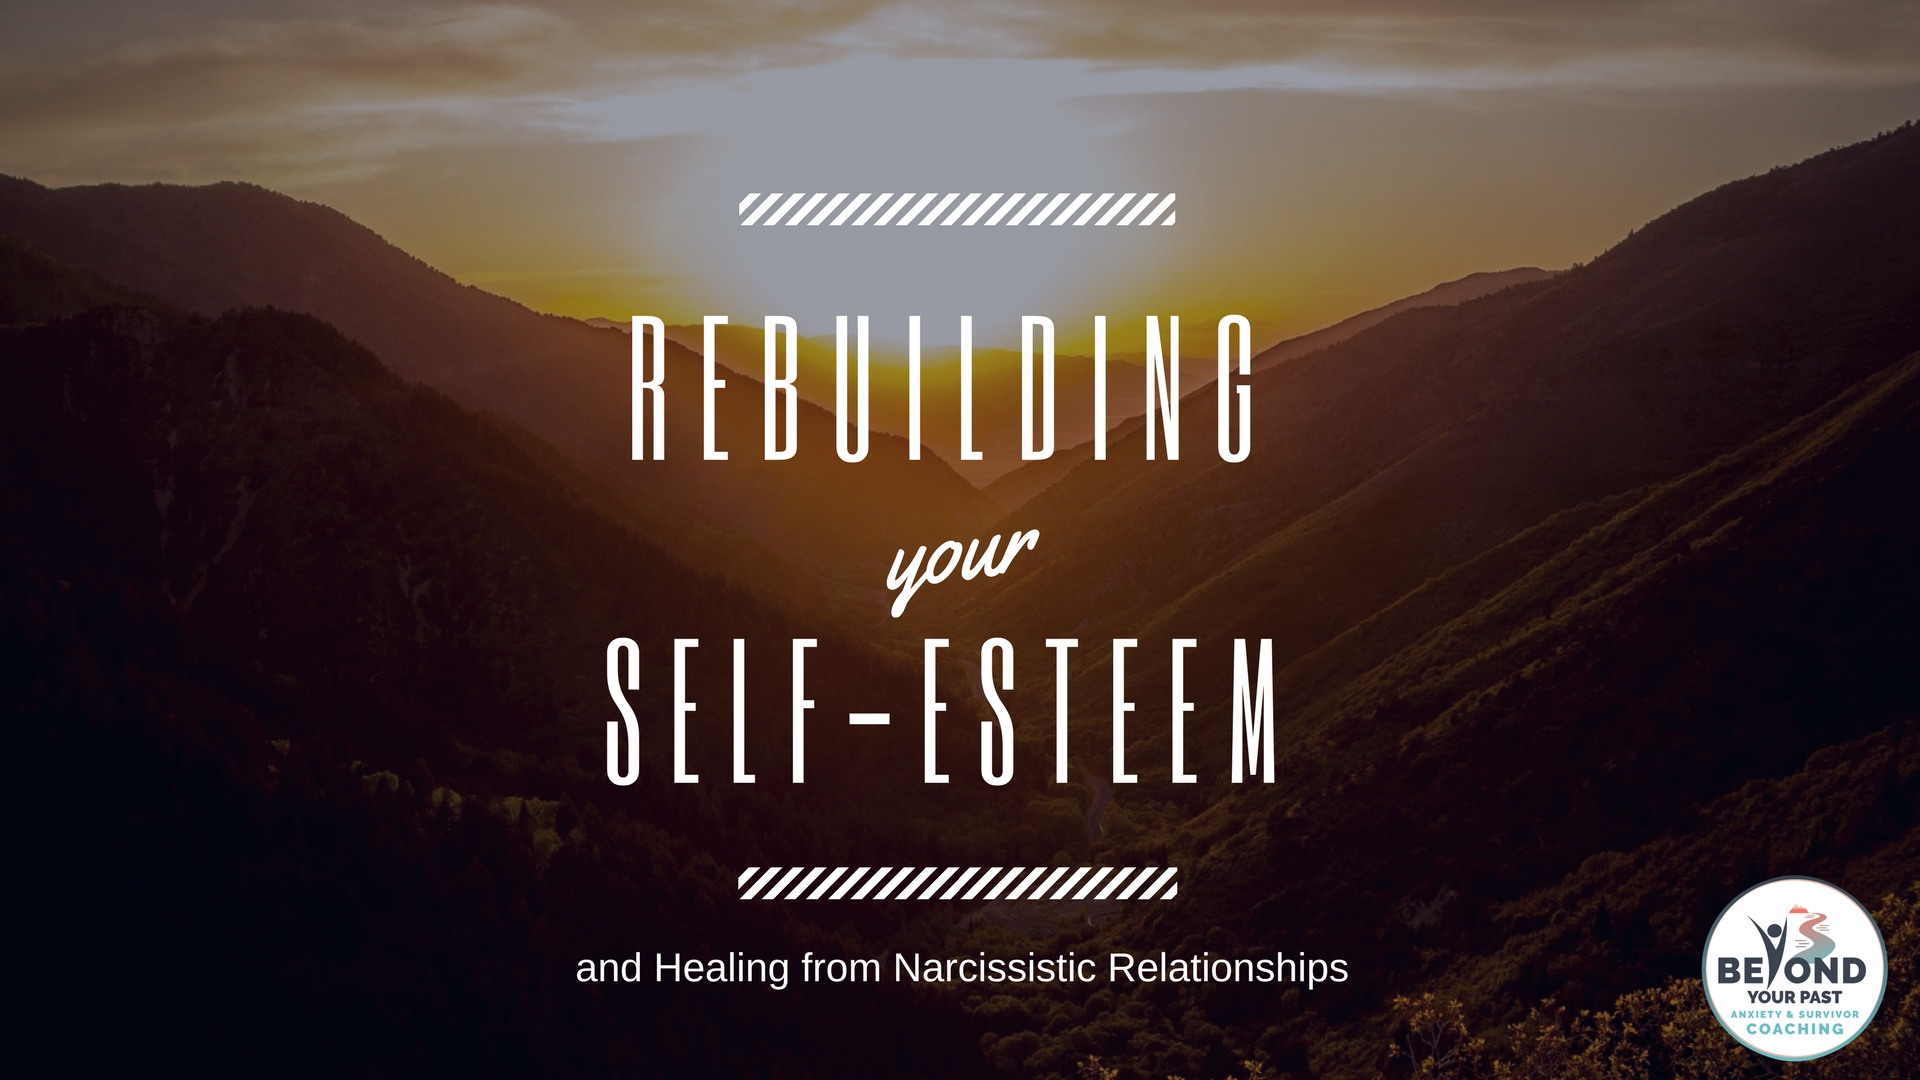 Rebuilding your Self-Esteem and Healing from Narcissistic Relationships.